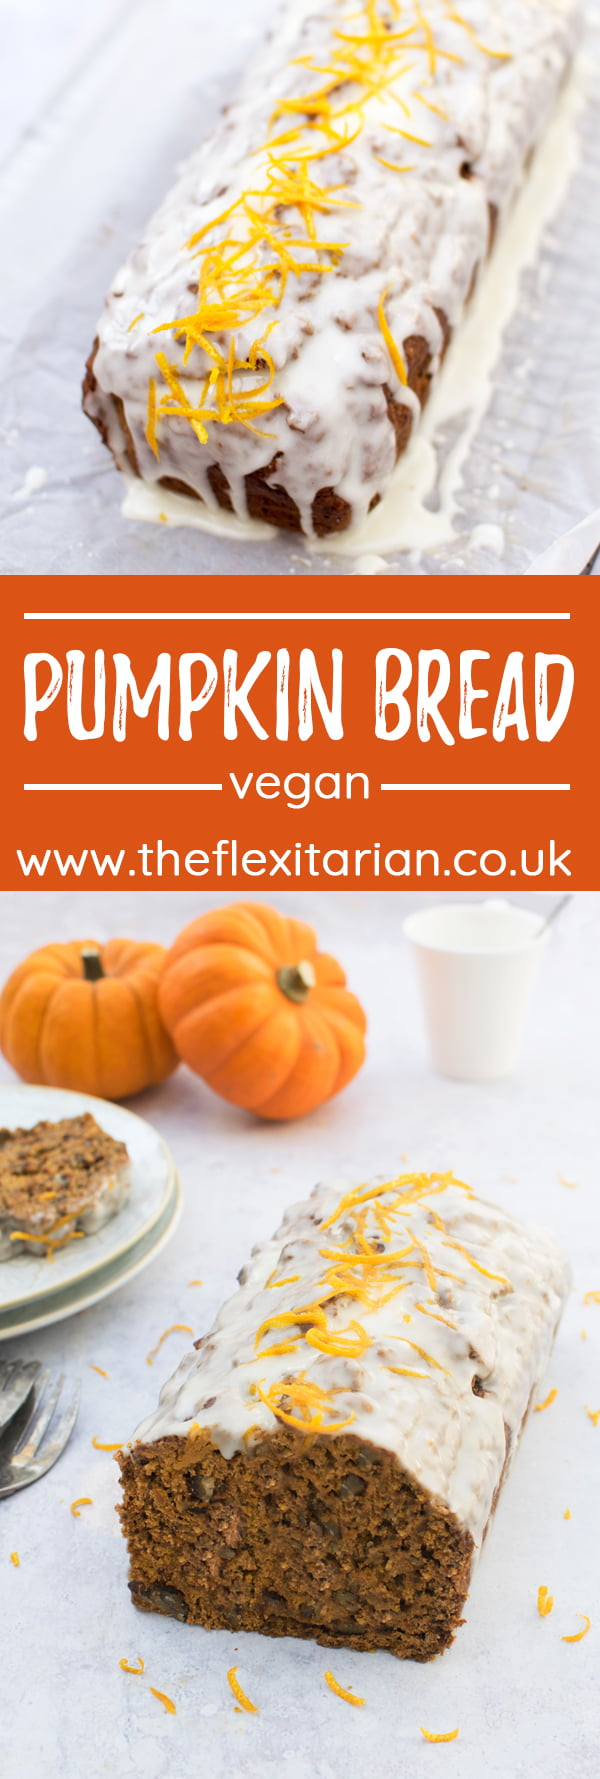 Pumpkin Bread [vegan] © The Flexitarian - Annabelle Randles